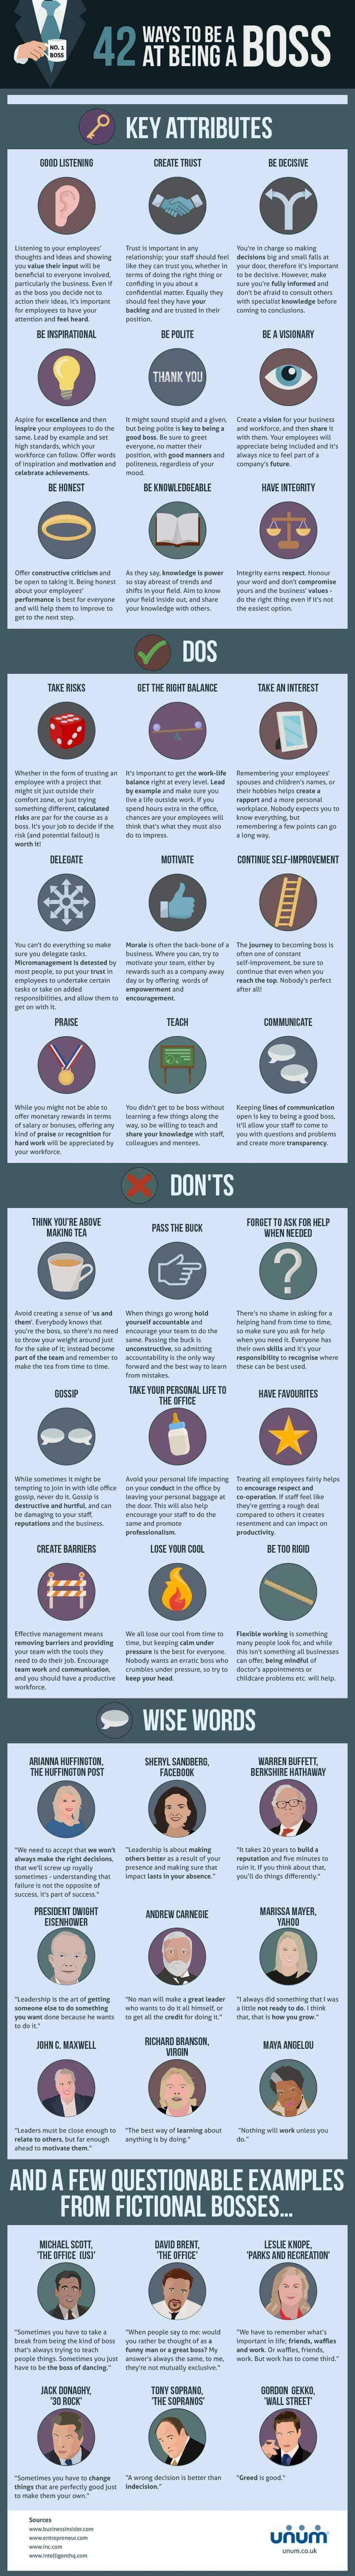 42 Ways to be a Boss - Infographic